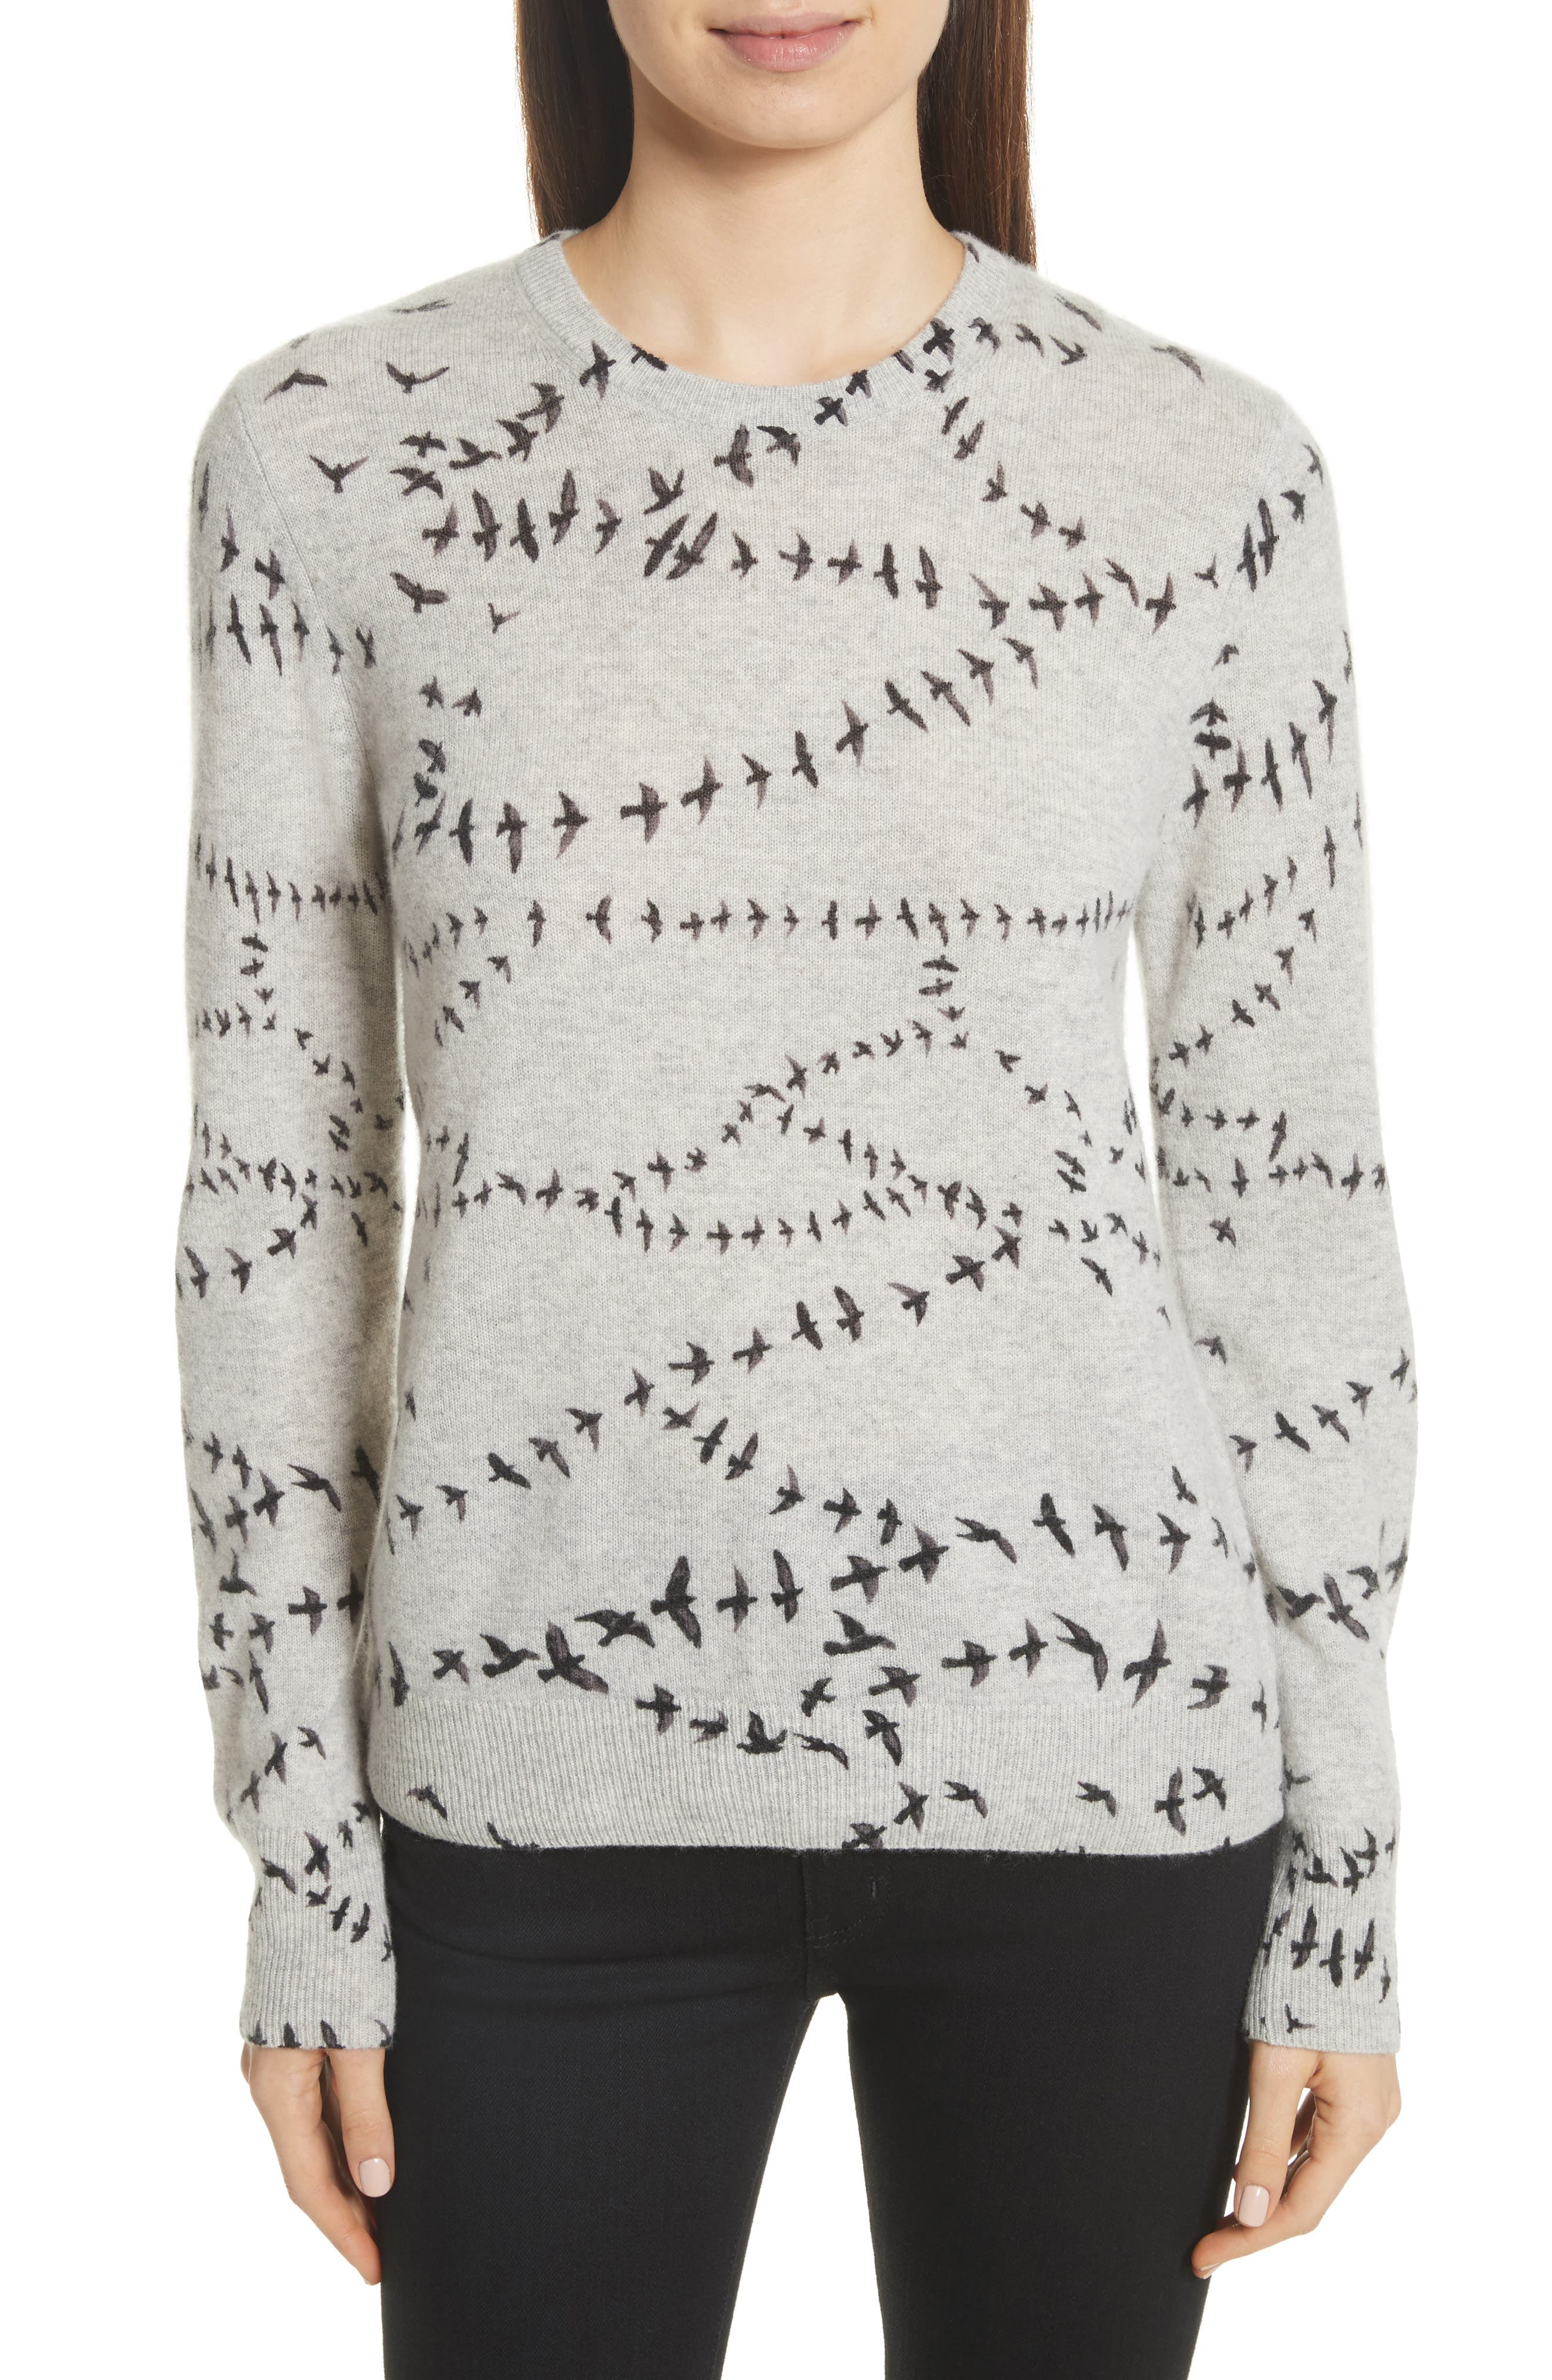 Alternate Image 1 Selected - Equipment Shane Bird Print Cashmere Sweater